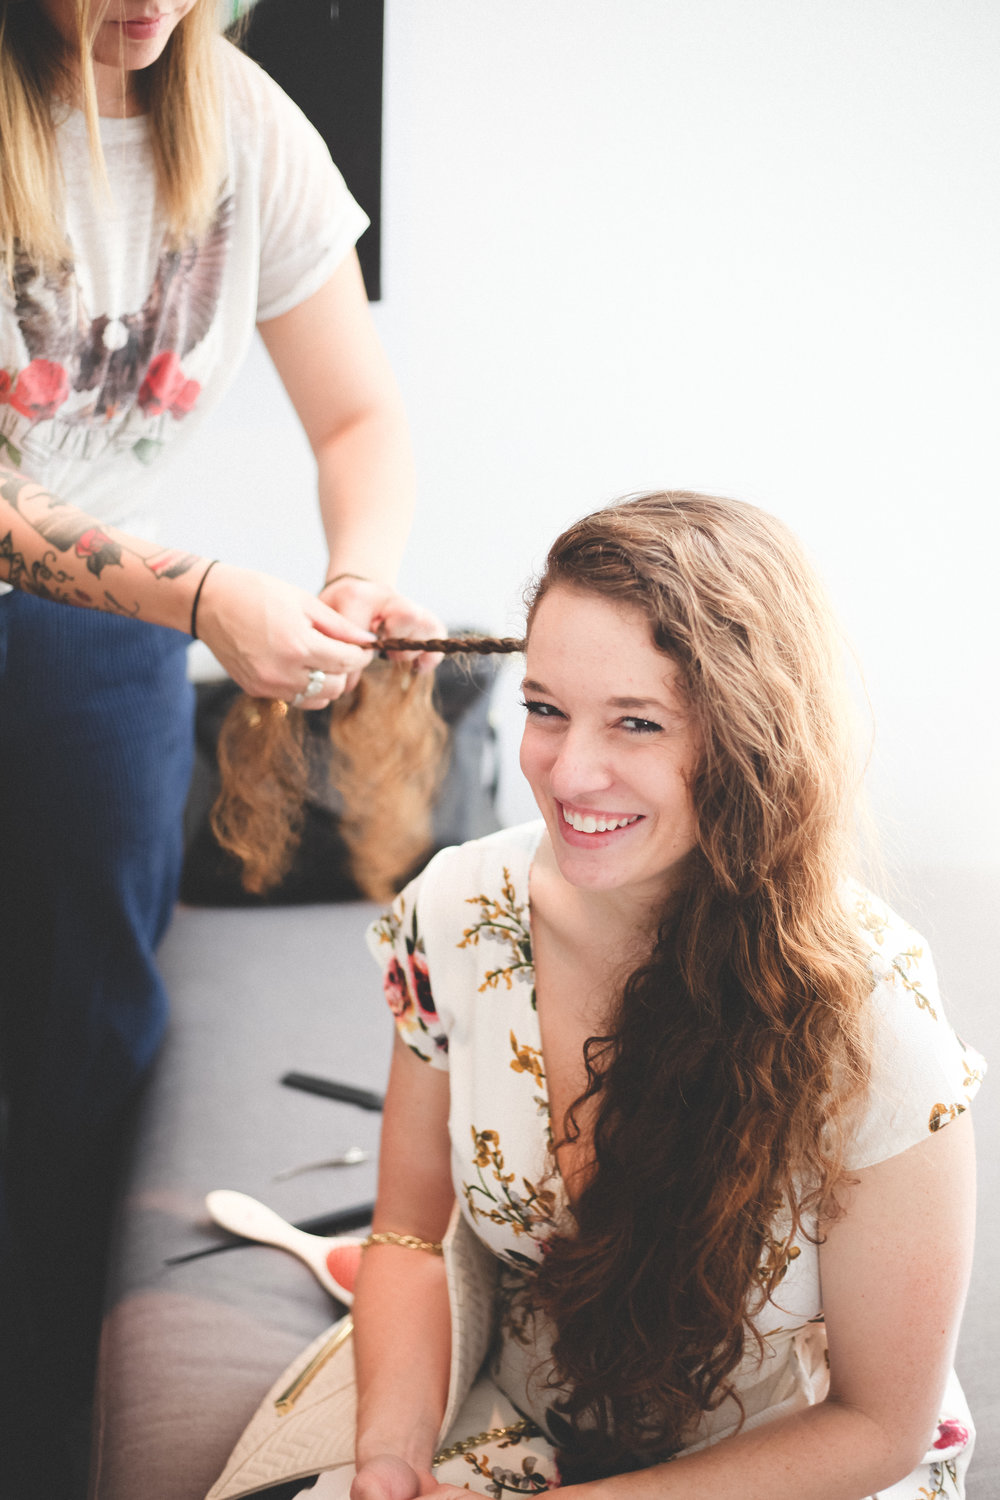 Kristen is all smiles at the La Vie braid bar